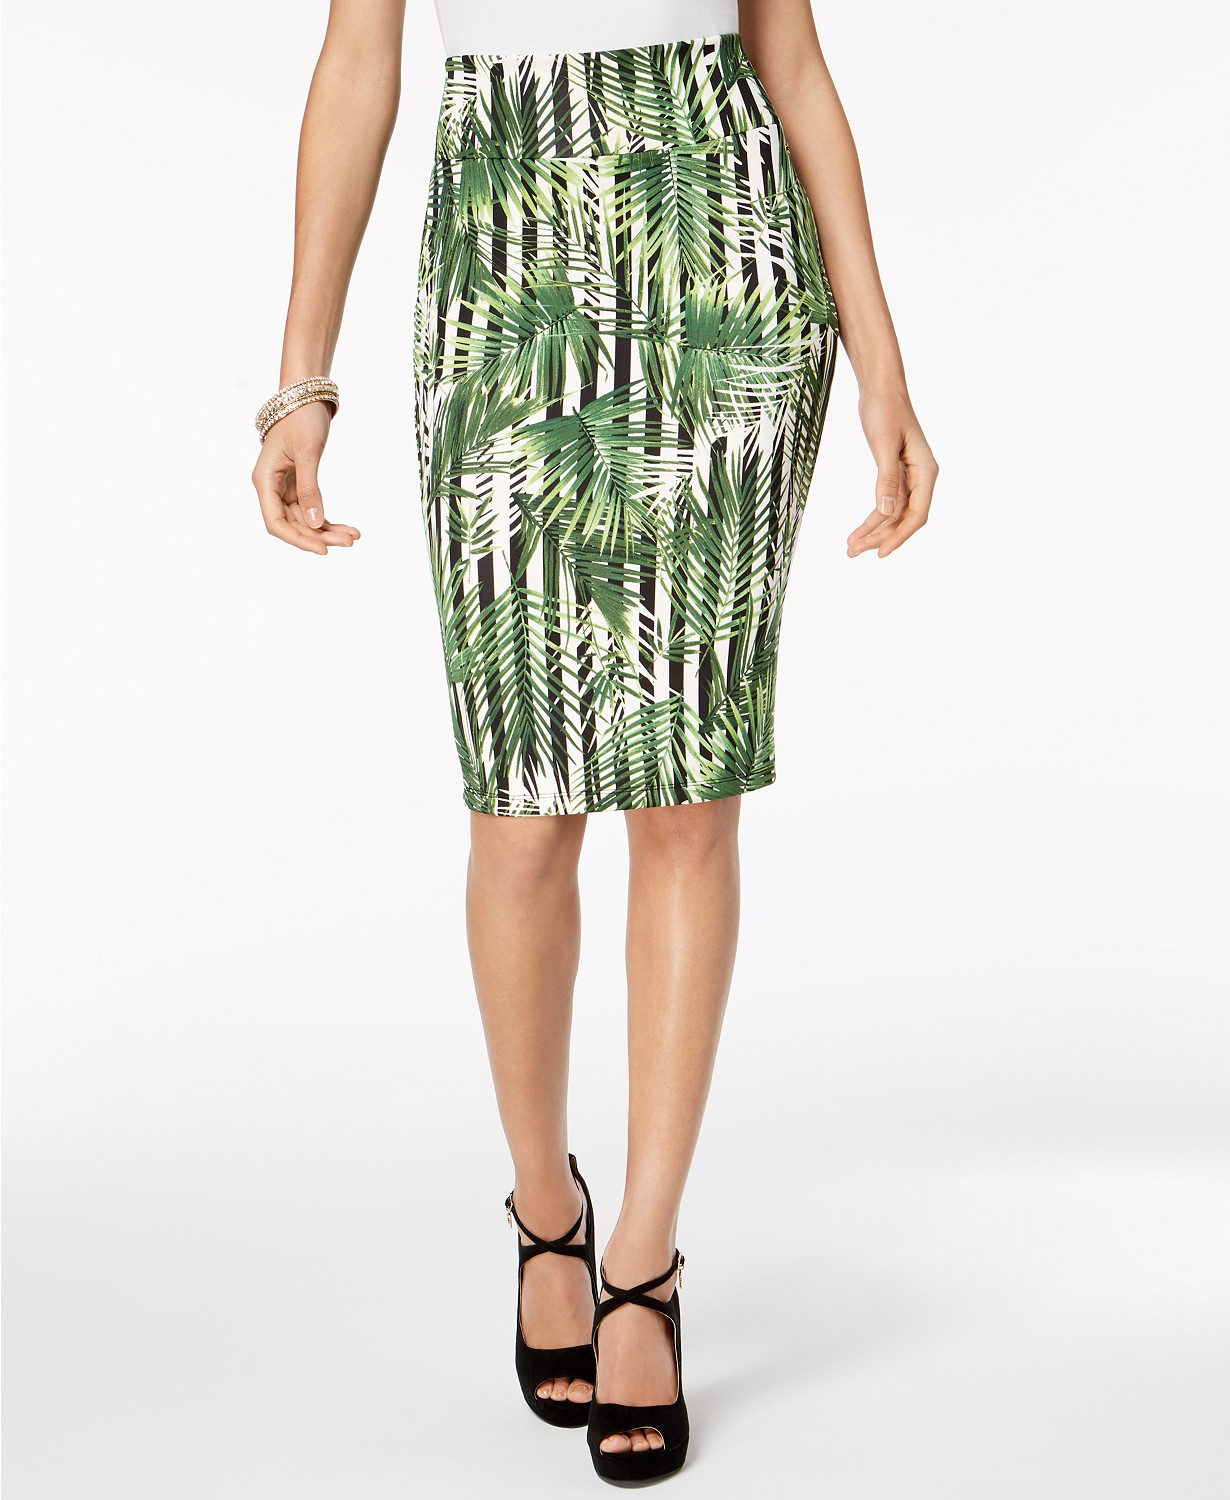 One of Thalia's favorite, and made with spandex-like material that contours your hips, this palm tree printed skirt will make you turn heads anywhere you go.